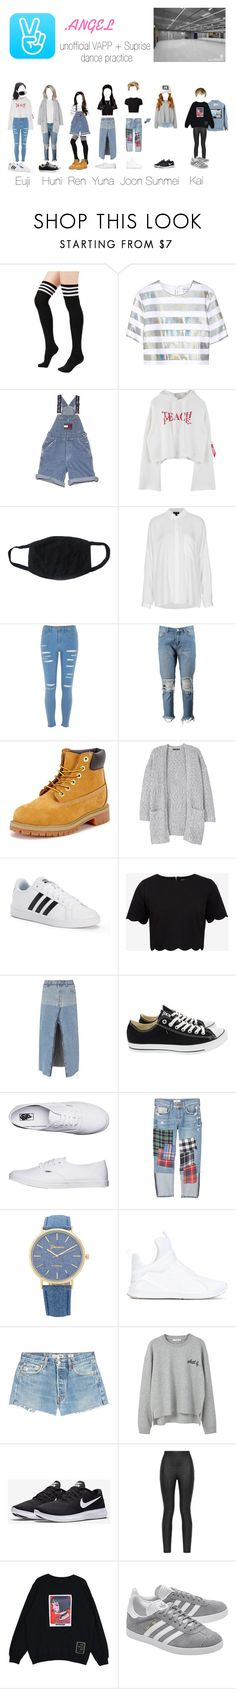 """""""Vapp dance special // Crush era"""" by official-angel ❤ liked on Polyvore featuring Jonathan Saunders, Ralph Lauren, Topshop, River Island, Boohoo, Timberland, MANGO, adidas, Ted Baker and RE/DONE"""